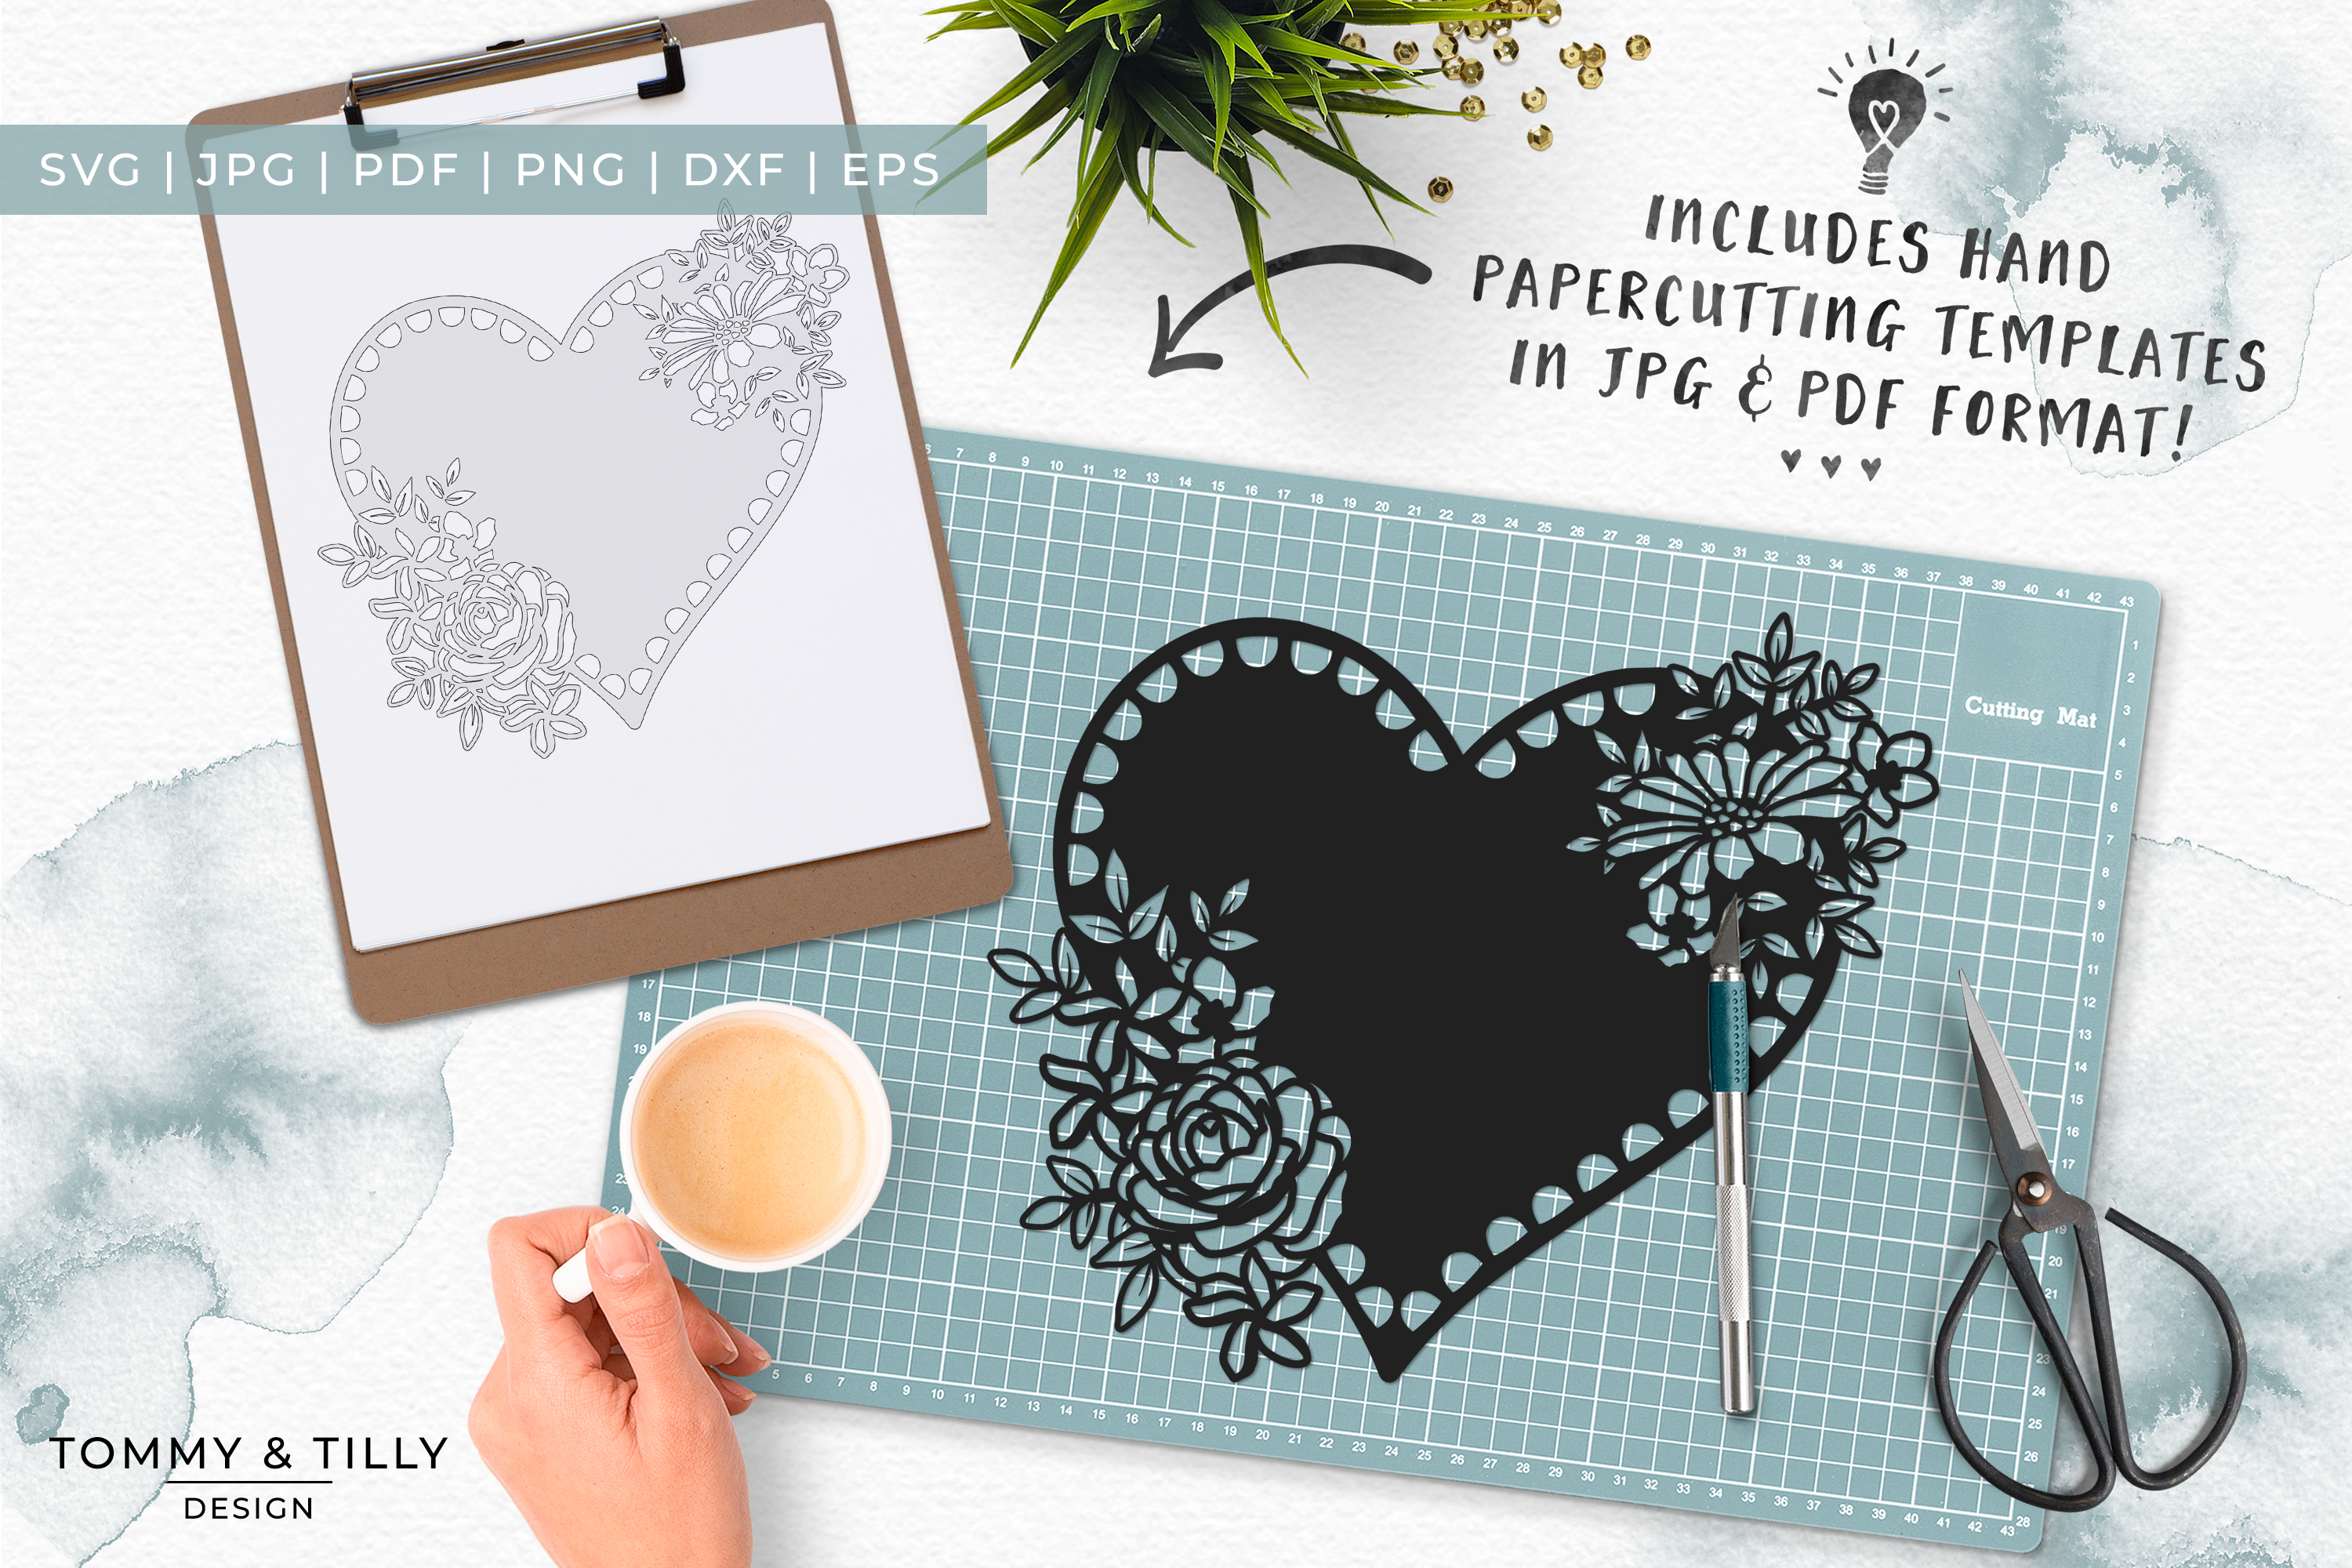 Intricate Flower Heart - Papercut SVG EPS DXF PNG PDF JPG example image 2